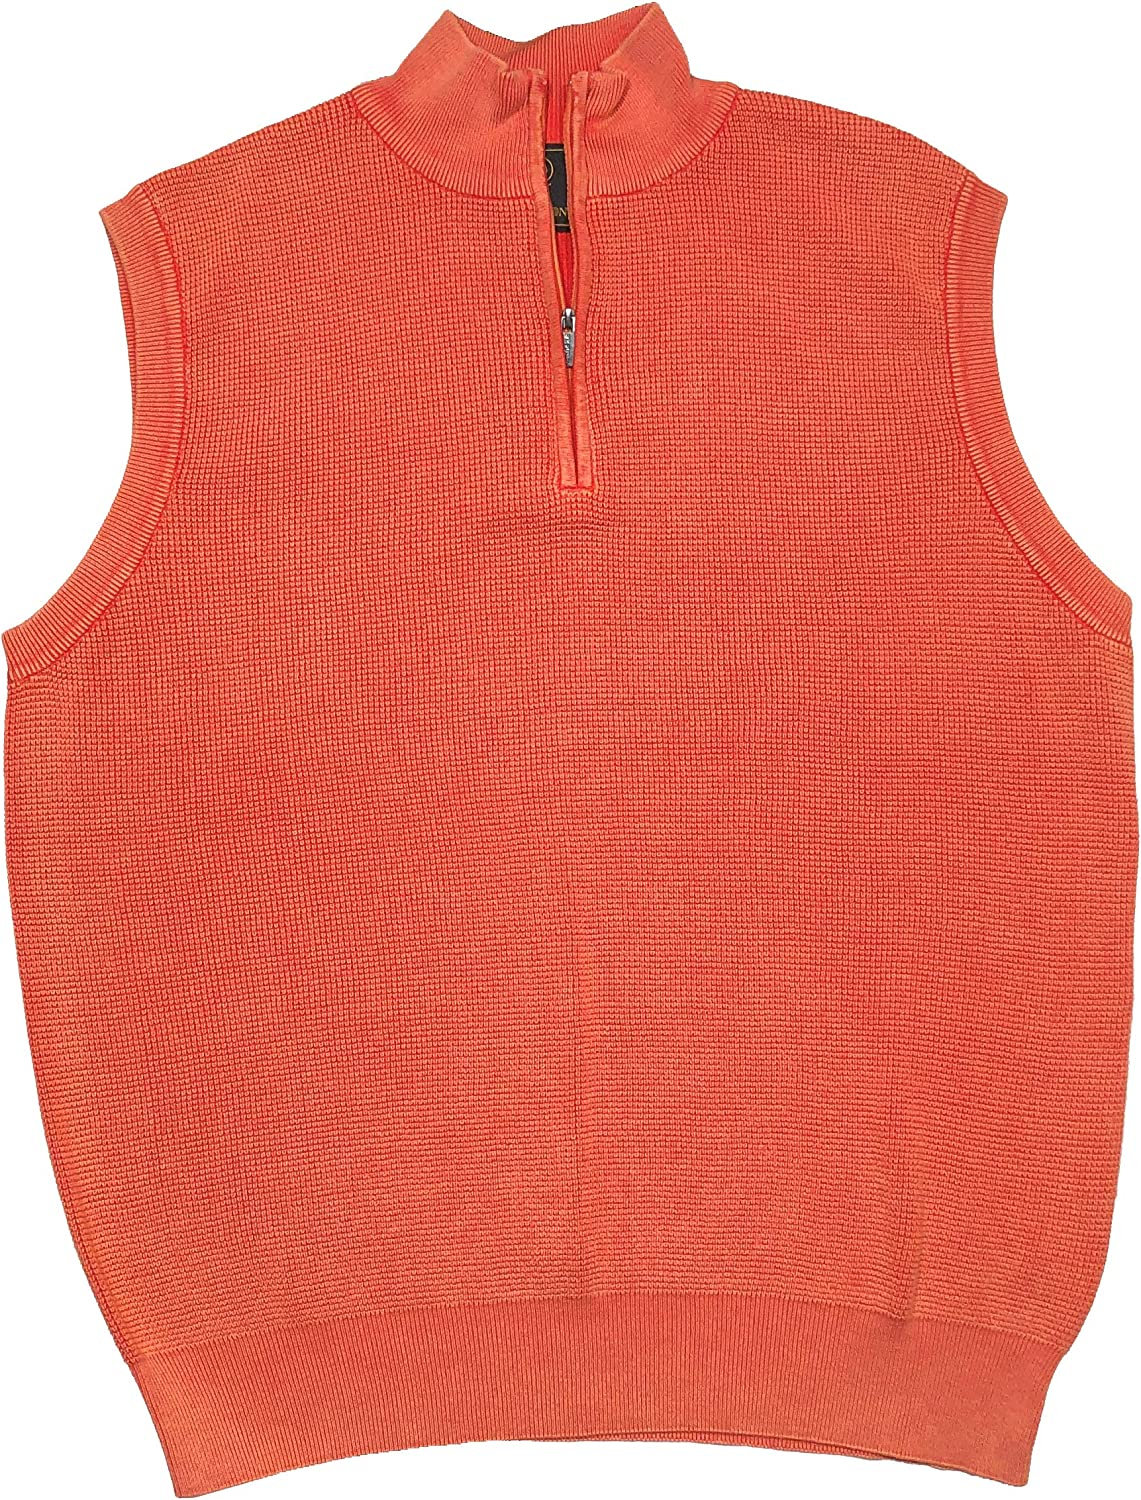 2021 autumn and winter new F X Fusion Baby Thermal Challenge the lowest price of Japan ☆ Sandwashed 1 Zip Sweater Vest 4